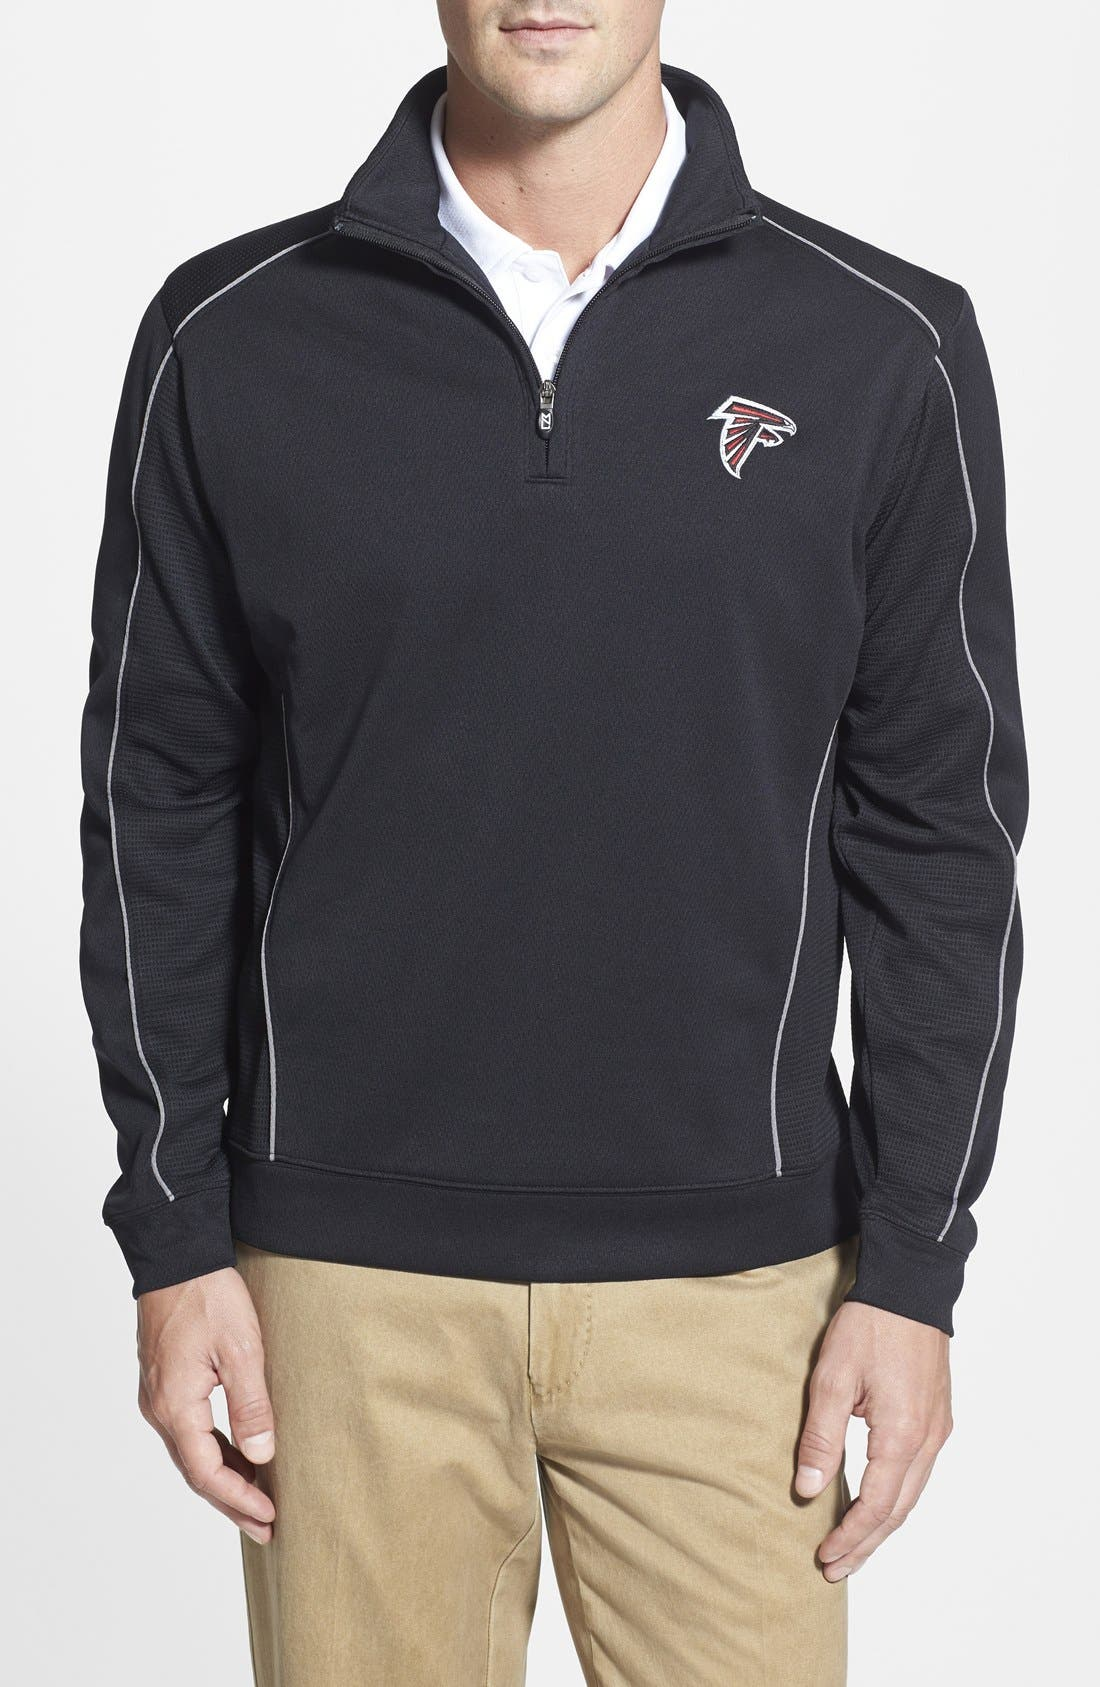 Atlanta Falcons - Edge DryTec Moisture Wicking Half Zip Pullover,                         Main,                         color, 001